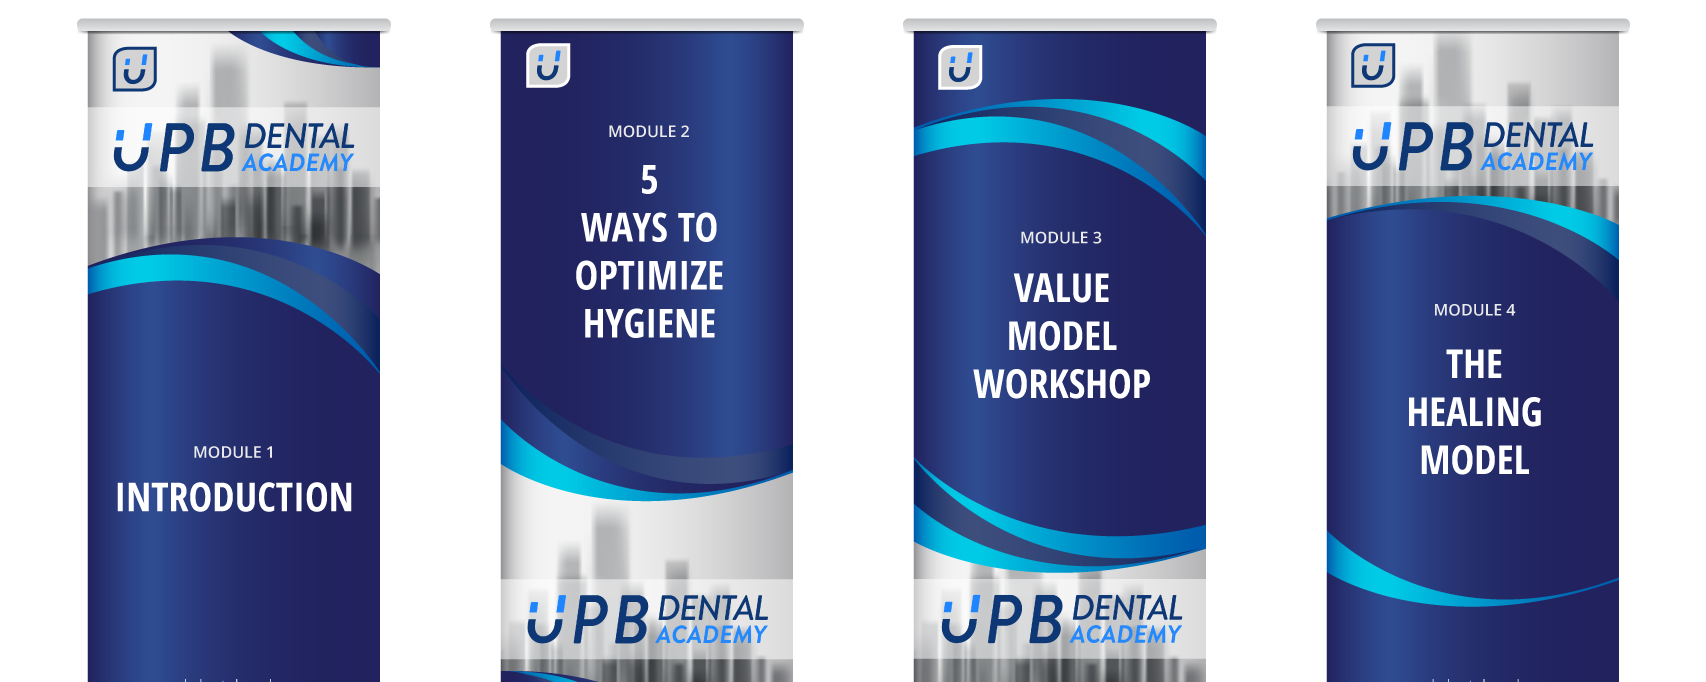 Dental Practice Growth Through Hygiene – Part 4 by UPB Dental Academy